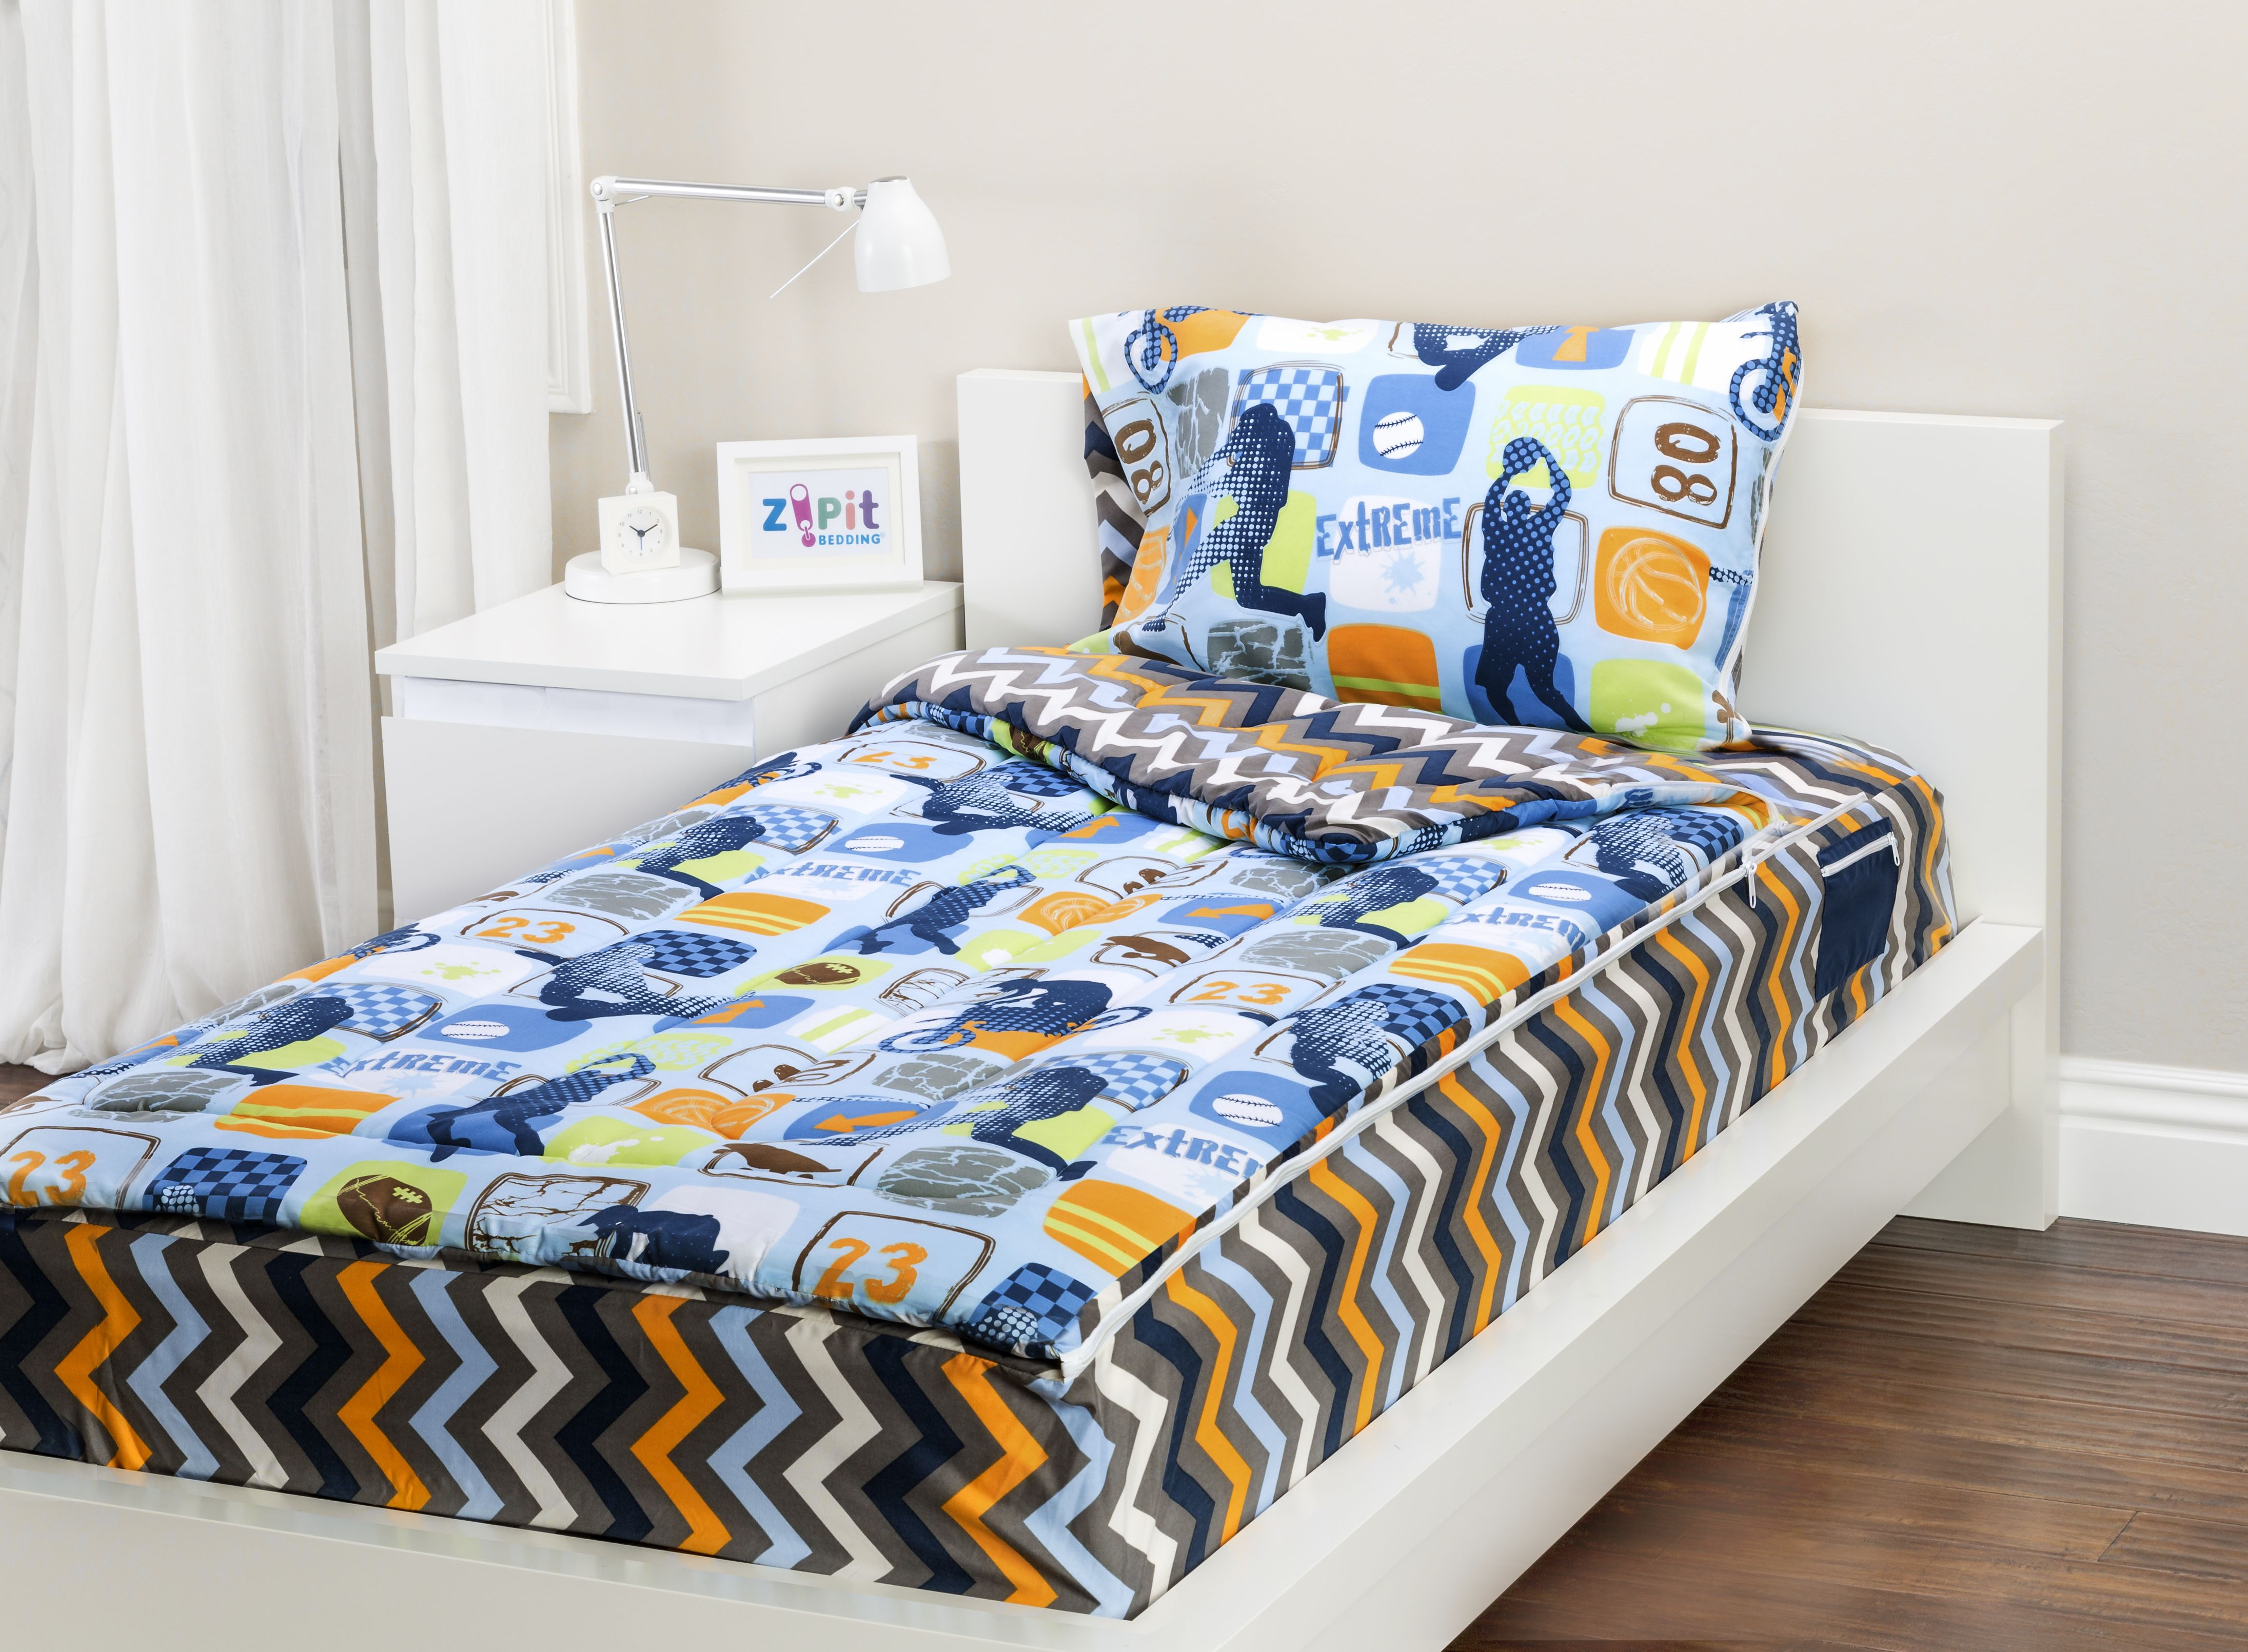 Extreme Sports Zipit Bedding Set! Zipit Bedding is America